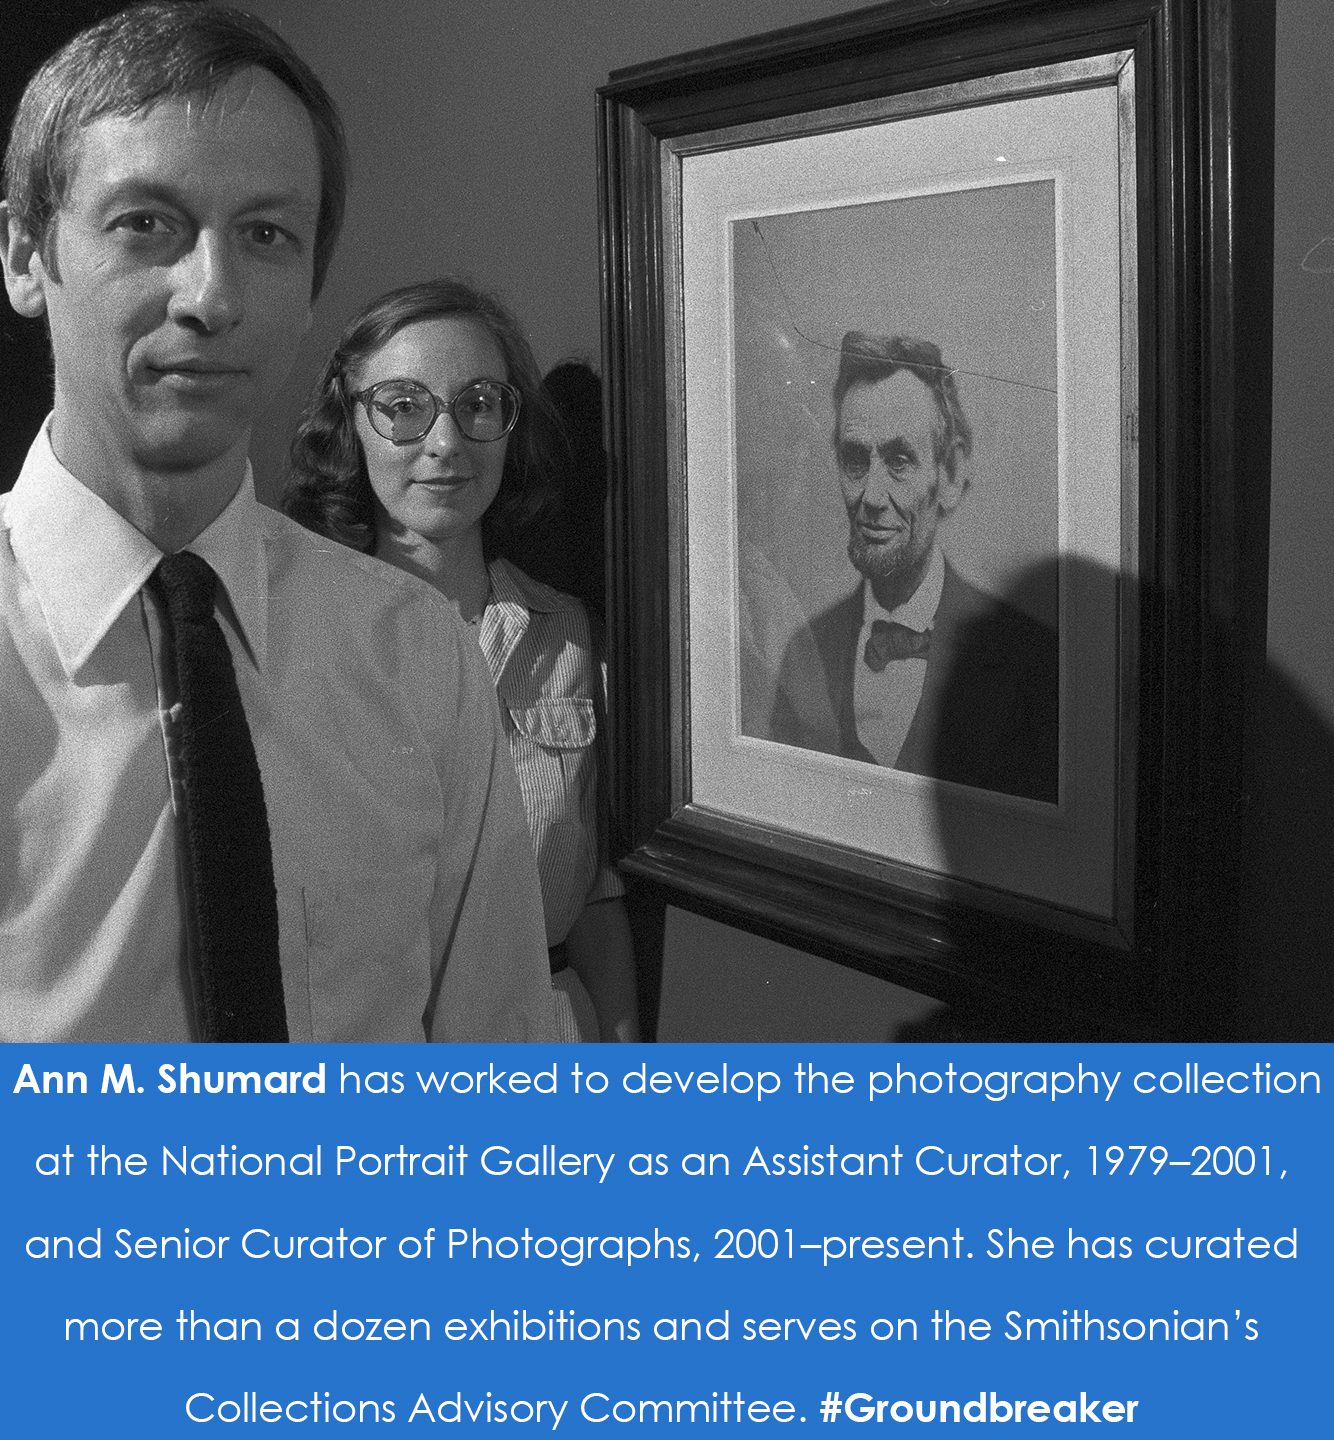 A woman stands behind a man, in the forefront. Both are standing near a portrait photograph of Abrah